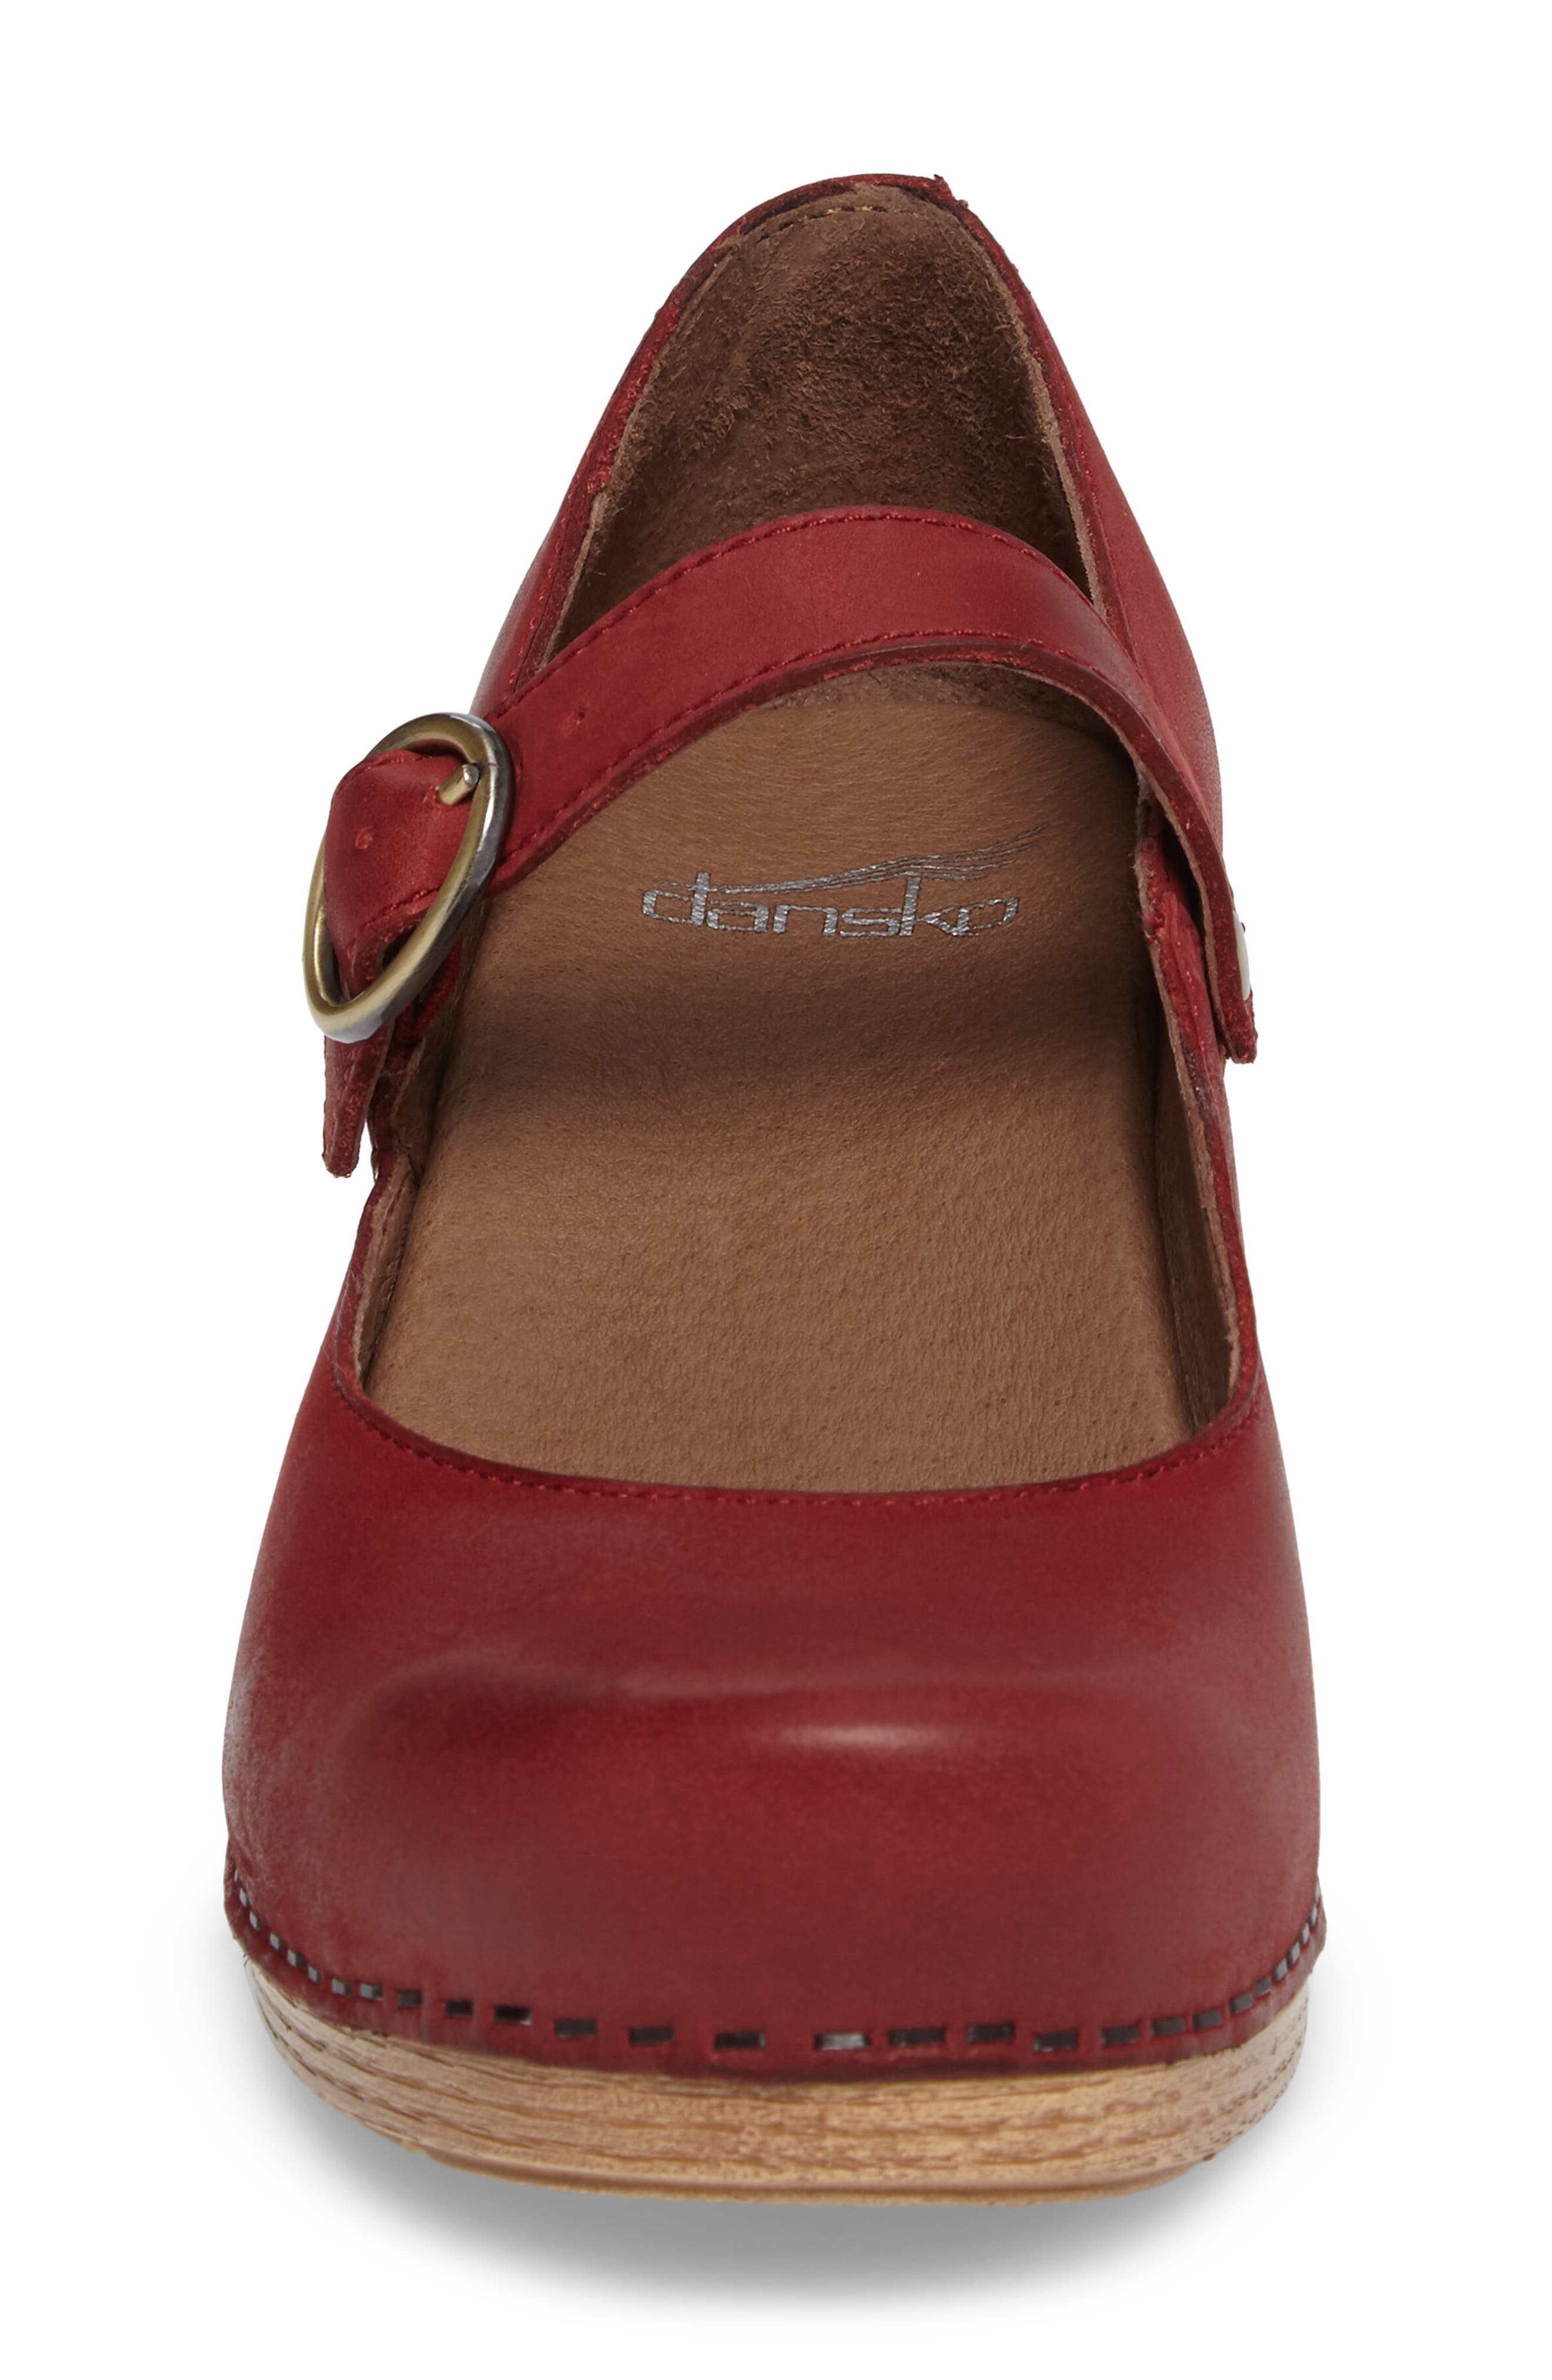 Missy Mary Jane Pump,                             Alternate thumbnail 4, color,                             Red Leather